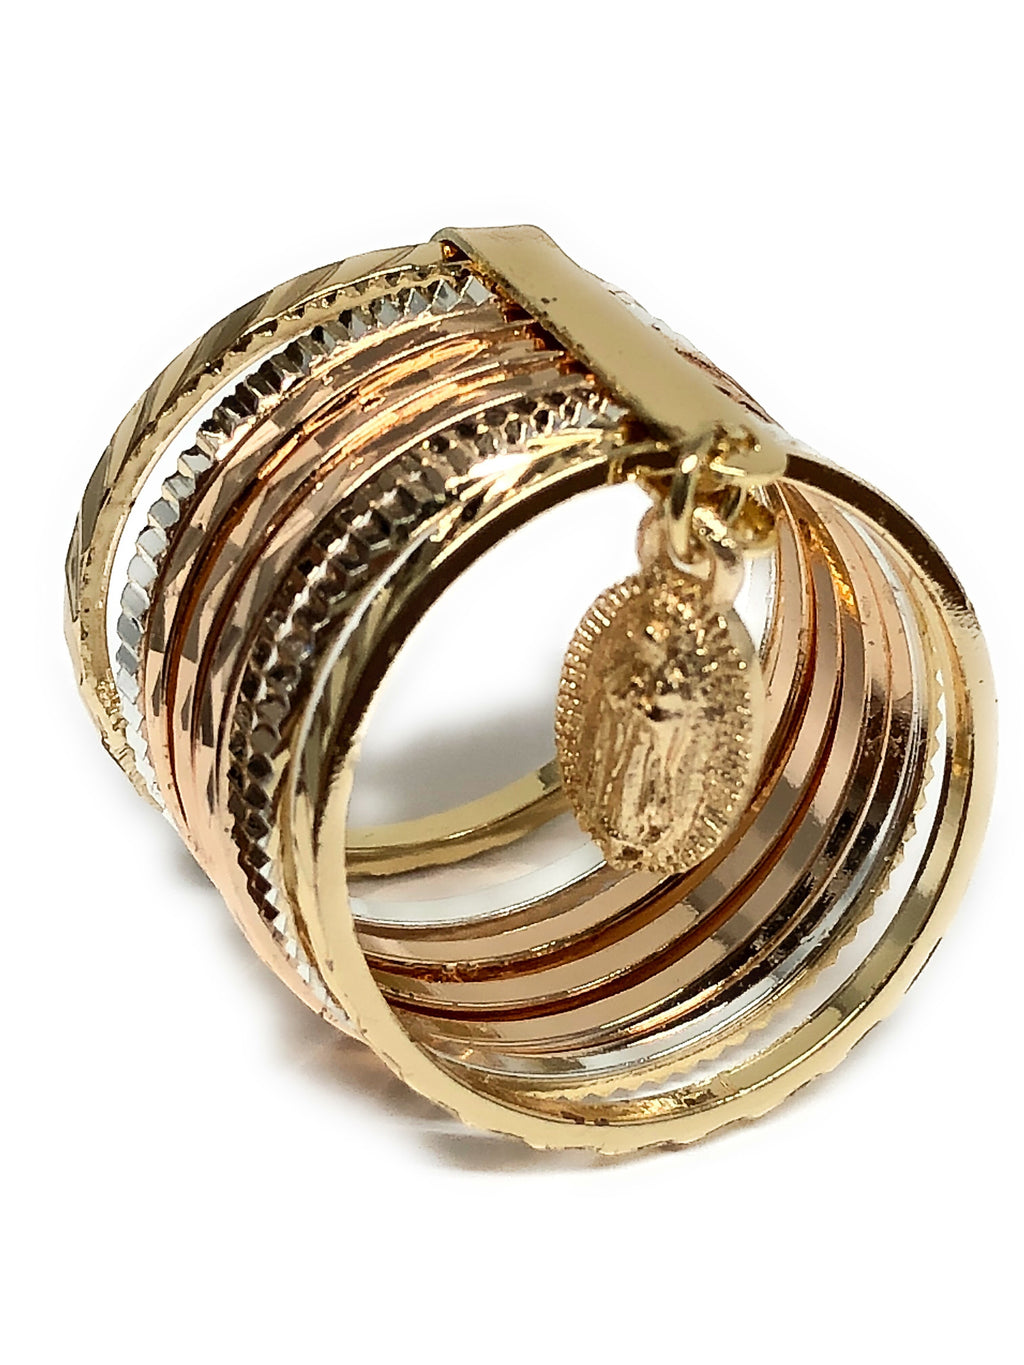 Tri-Color Gold Plated Semanario Virgin Mary Ring Virgen De Guadalupe Anillo Semanario Tres Colores - Fran & Co. Jewelry